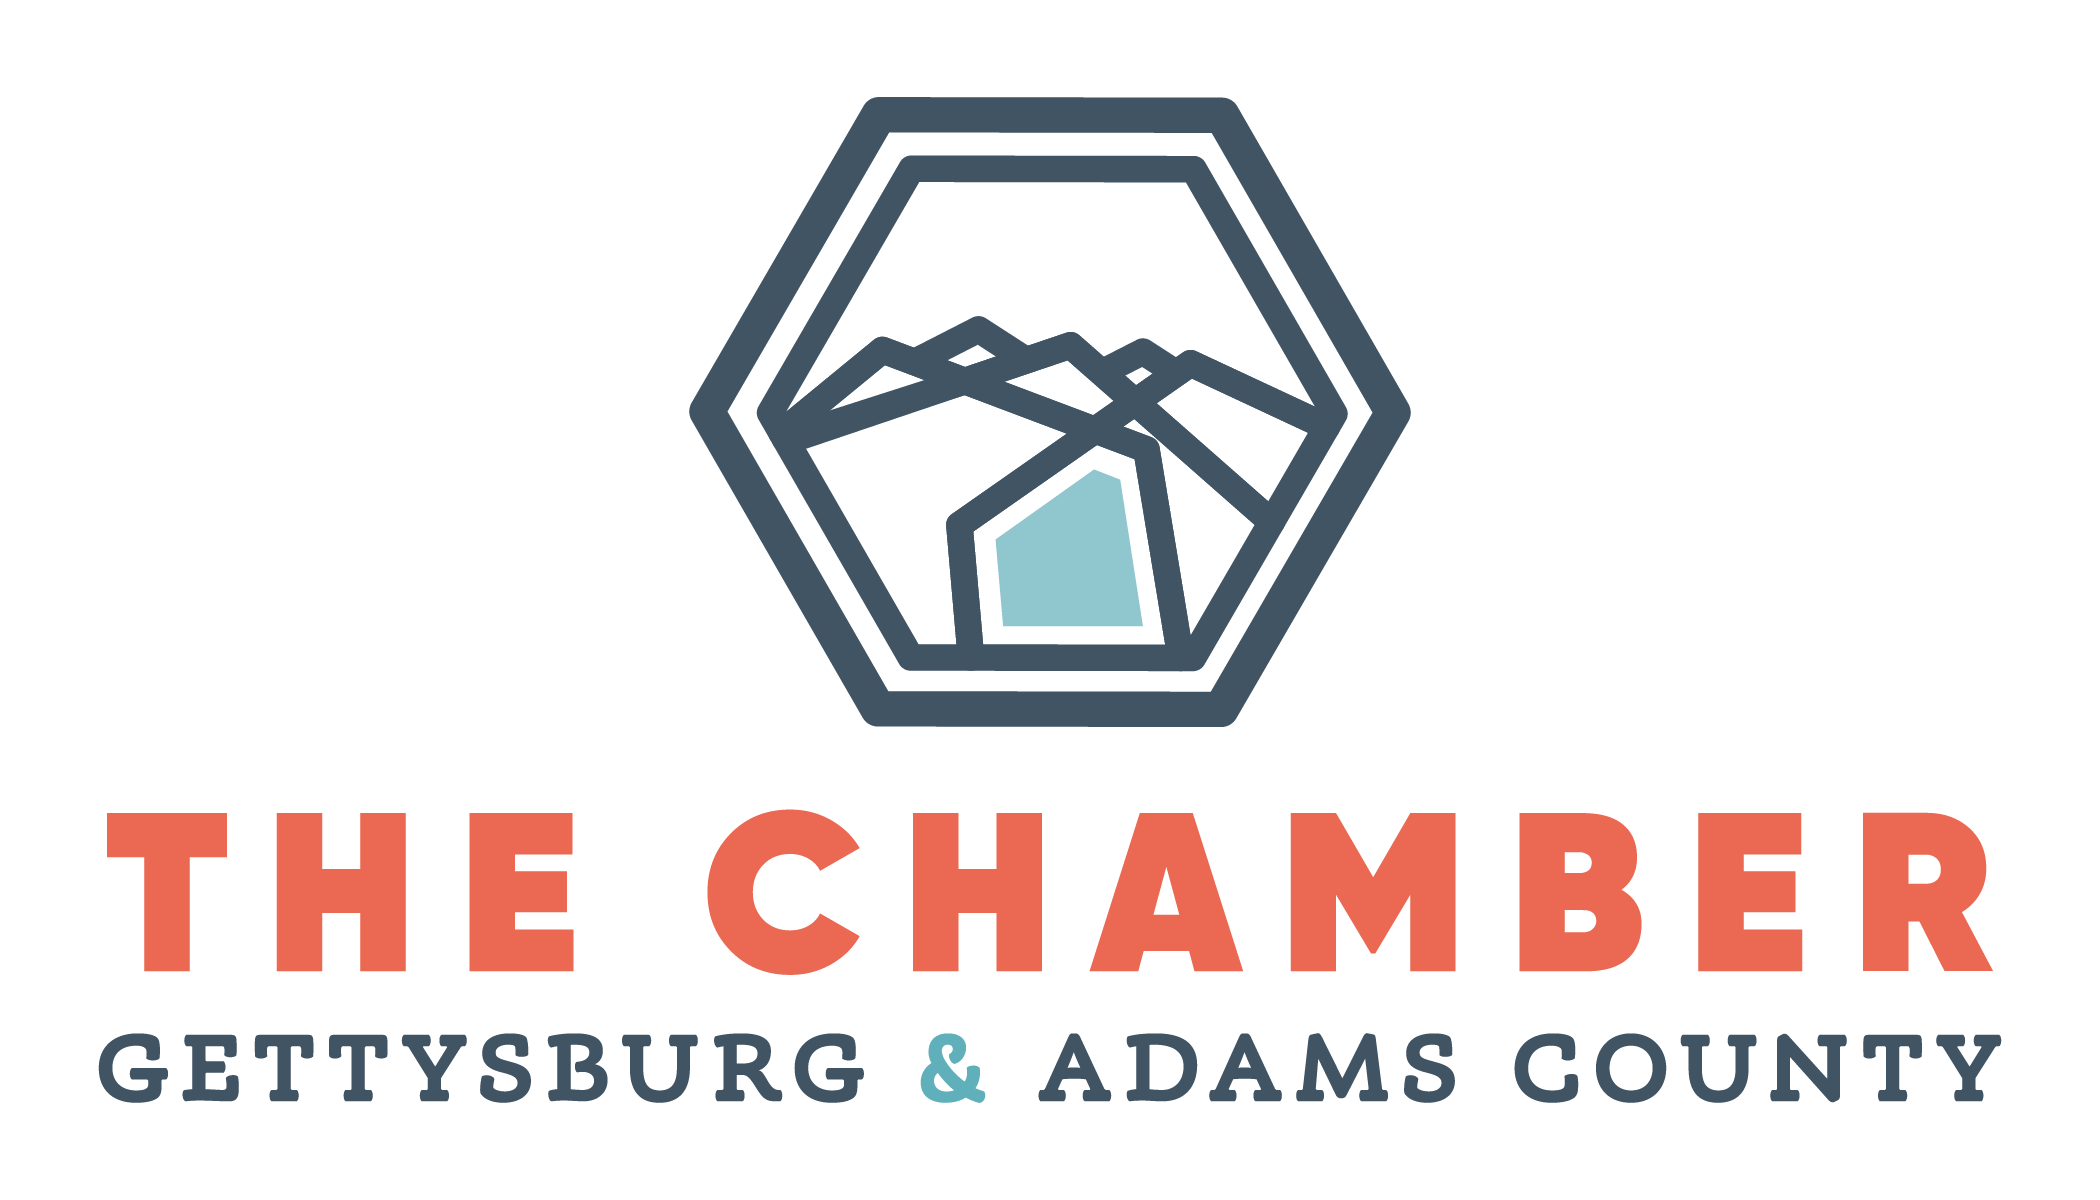 The Chamber of Gettysburg and Adams County